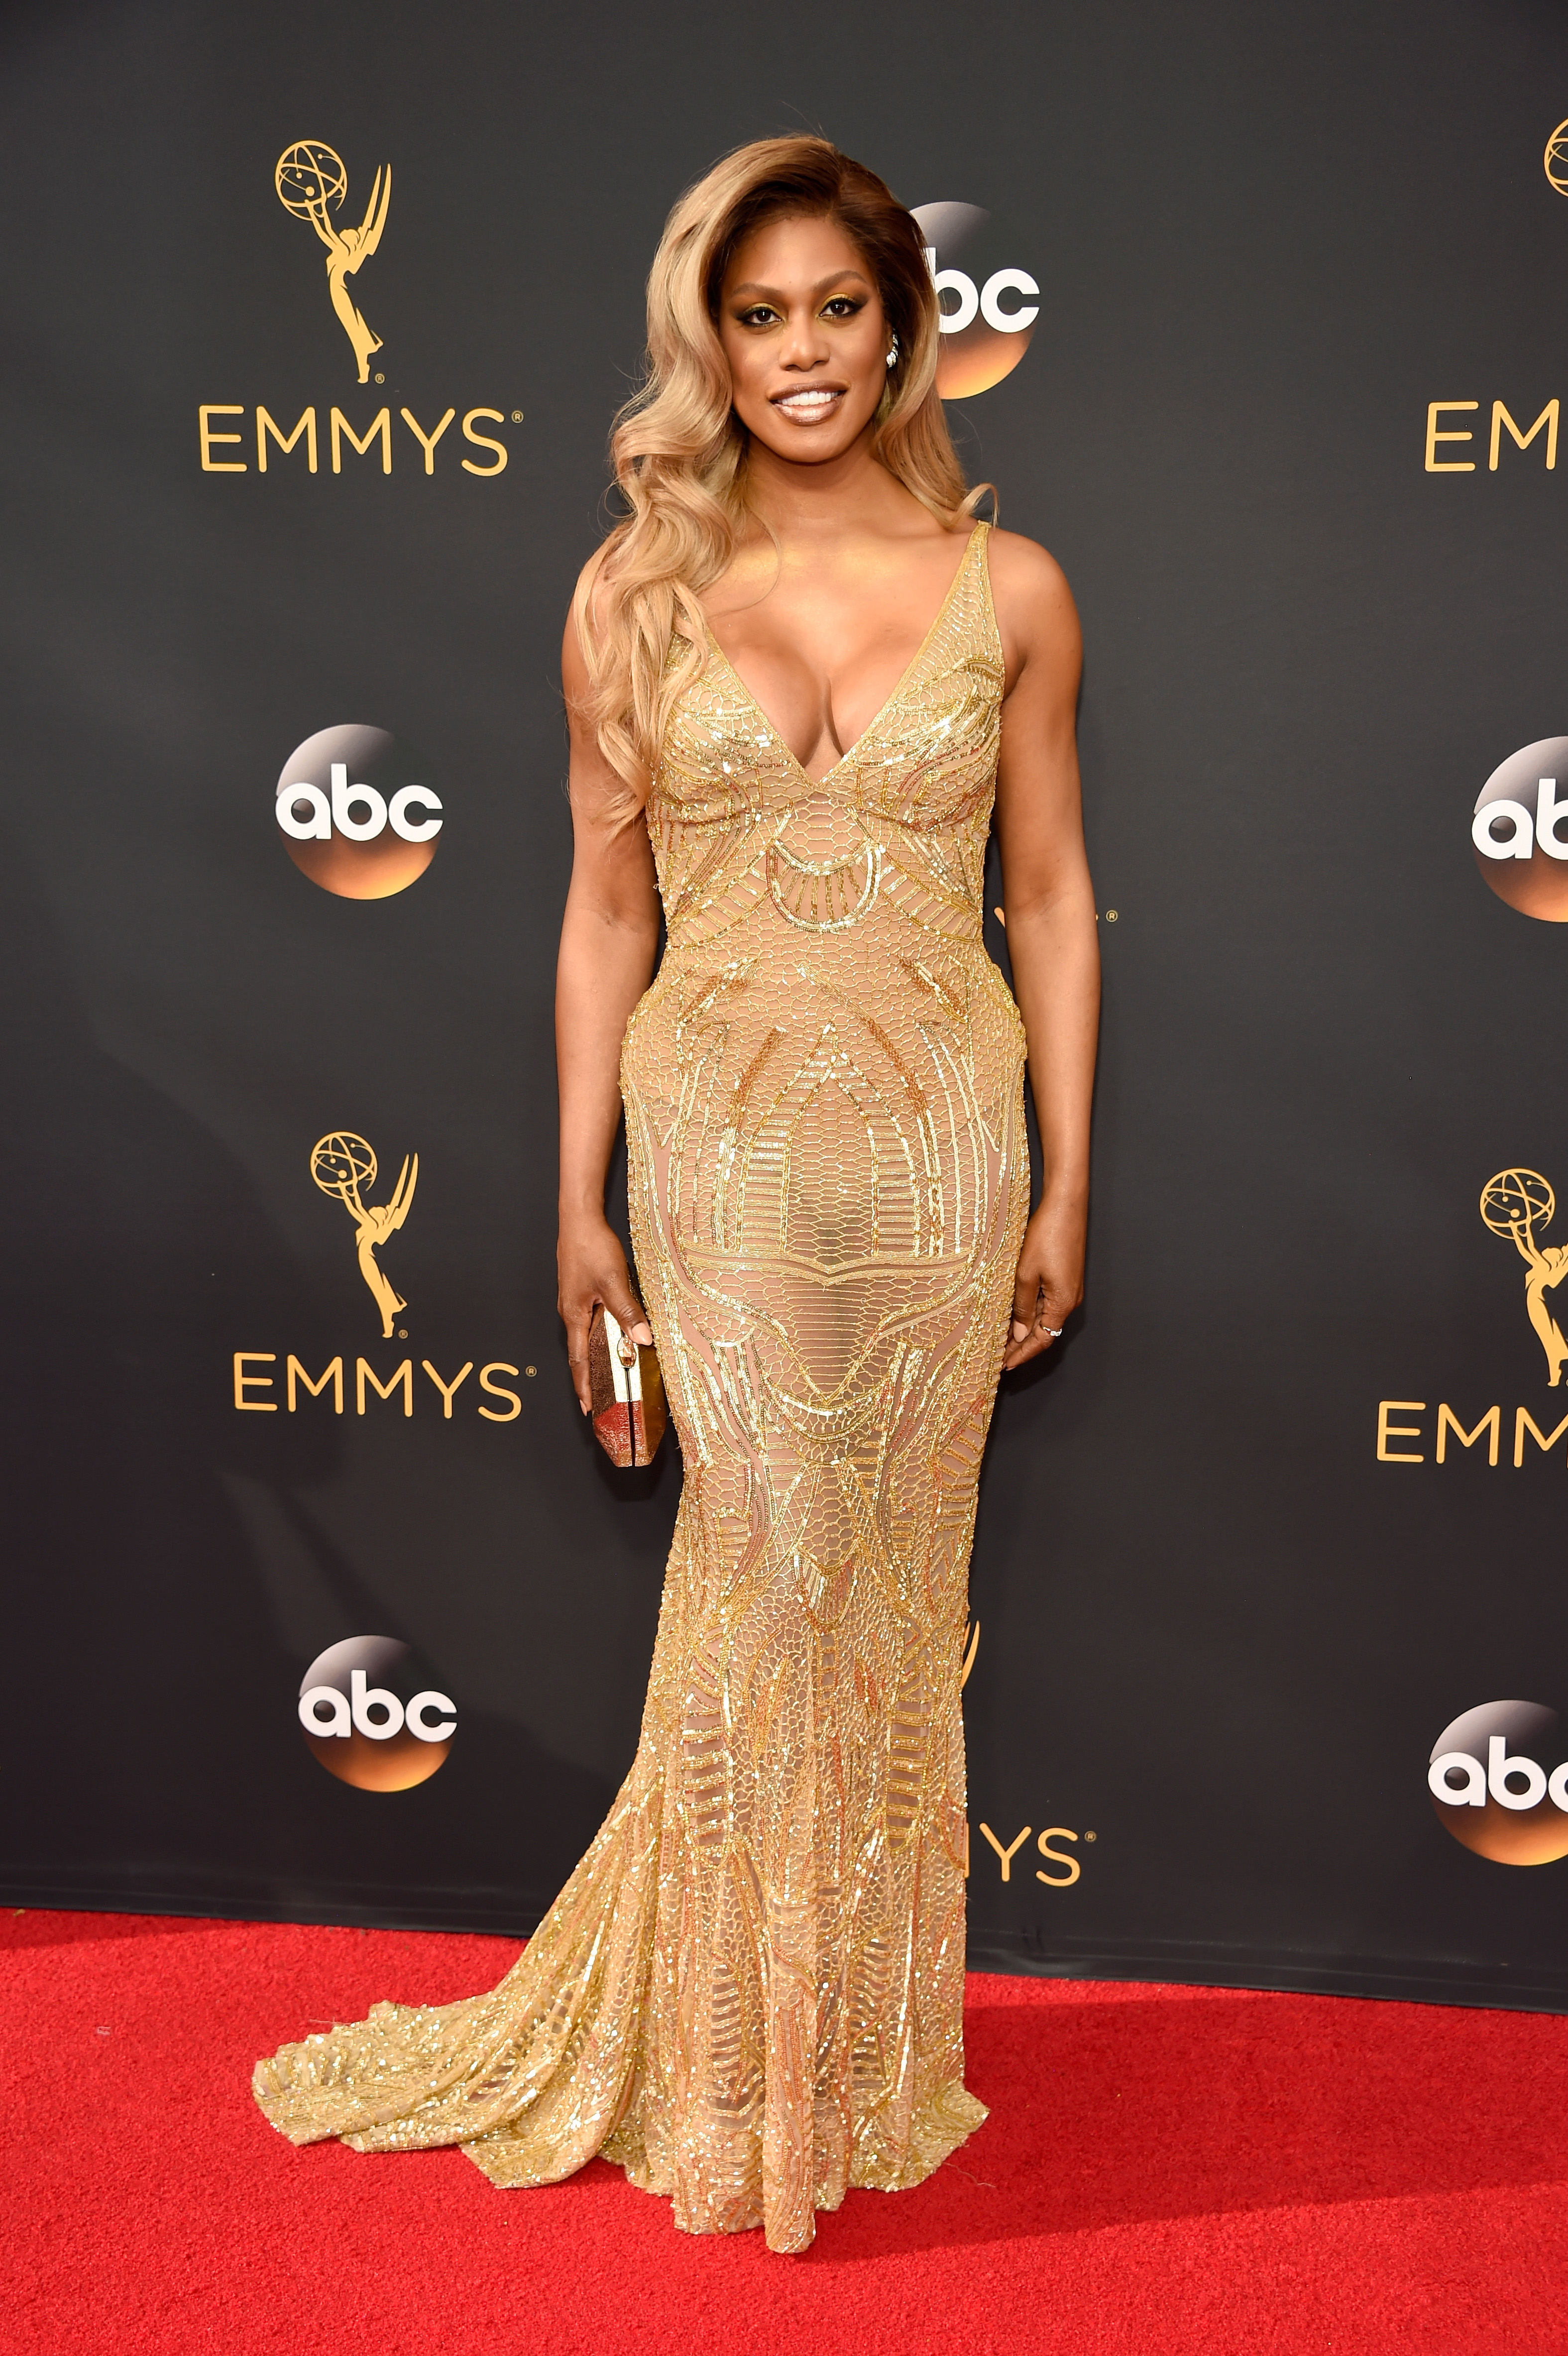 Laverne Cox arrives at the 68th Annual Primetime Emmy Awards at Microsoft Theater on Sept. 18, 2016 in Los Angeles.